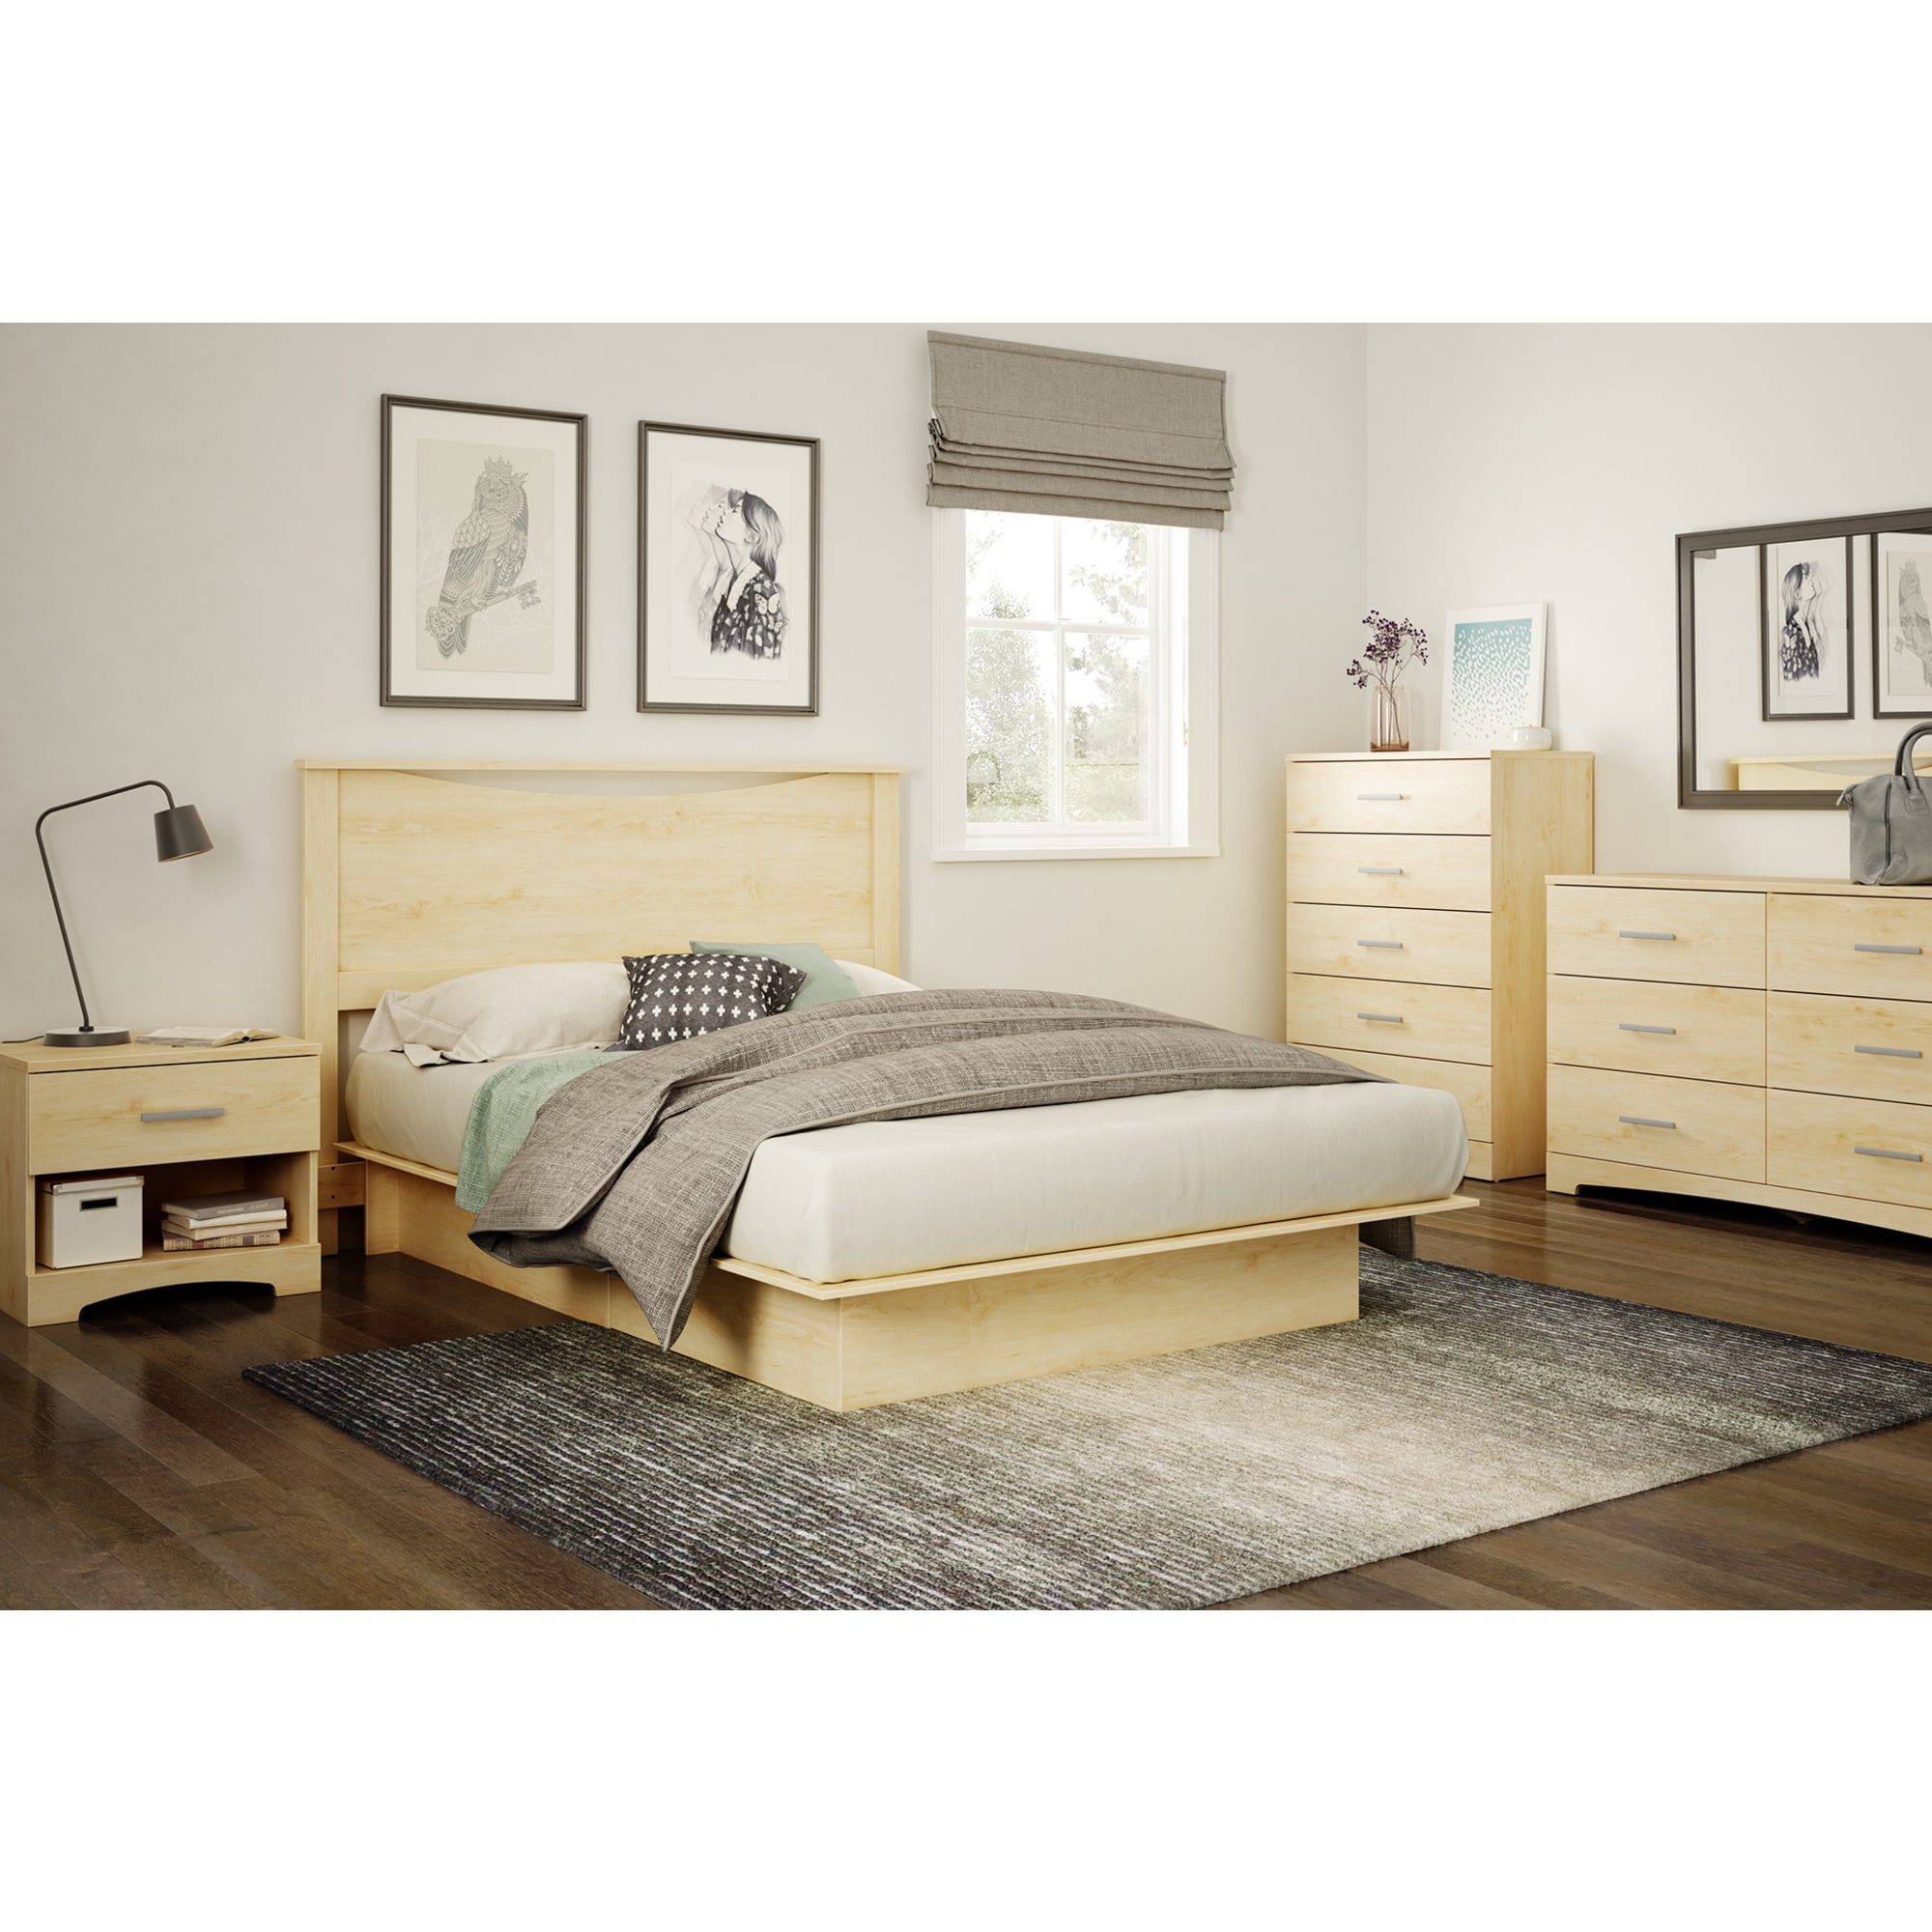 South-Shore-Gramercy-Single-drawer-Nightstand thumbnail 10